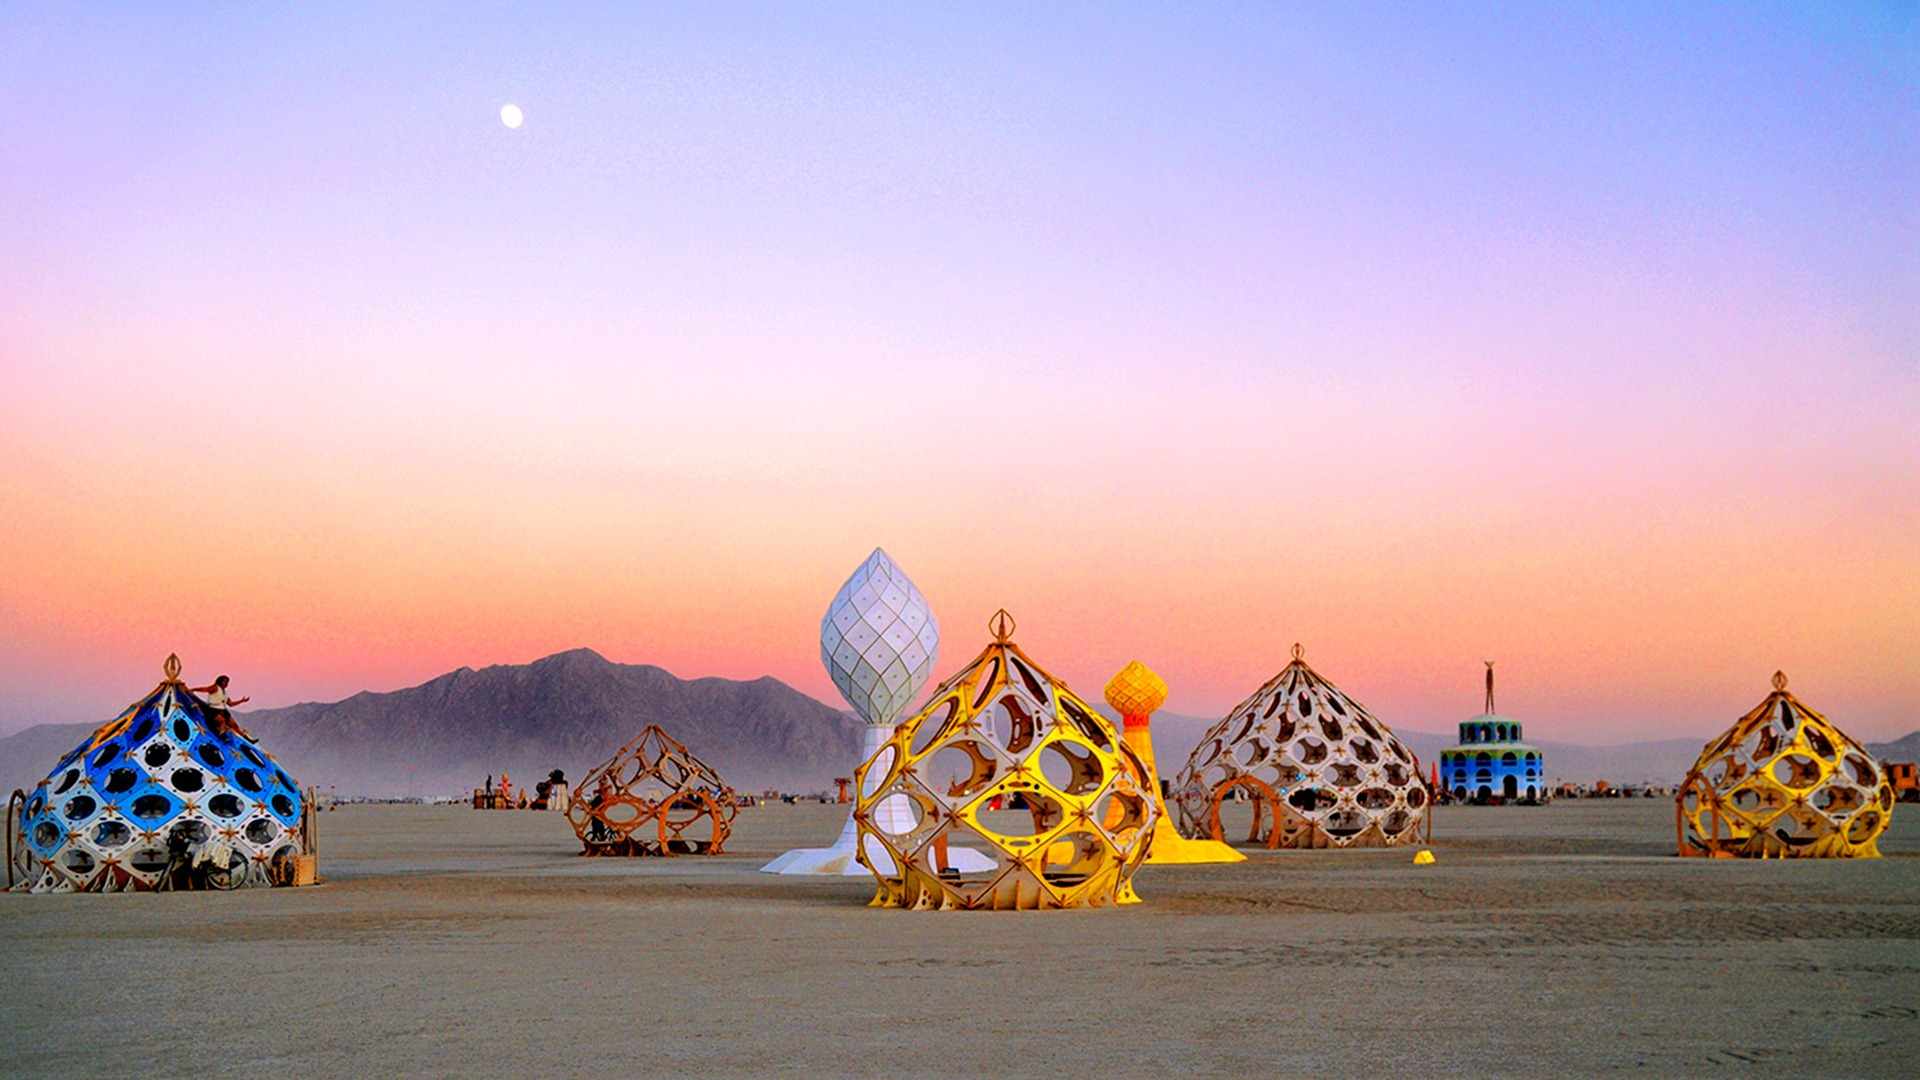 Burning Man Festival Background Wallpapers 26843   Baltana 1920x1080